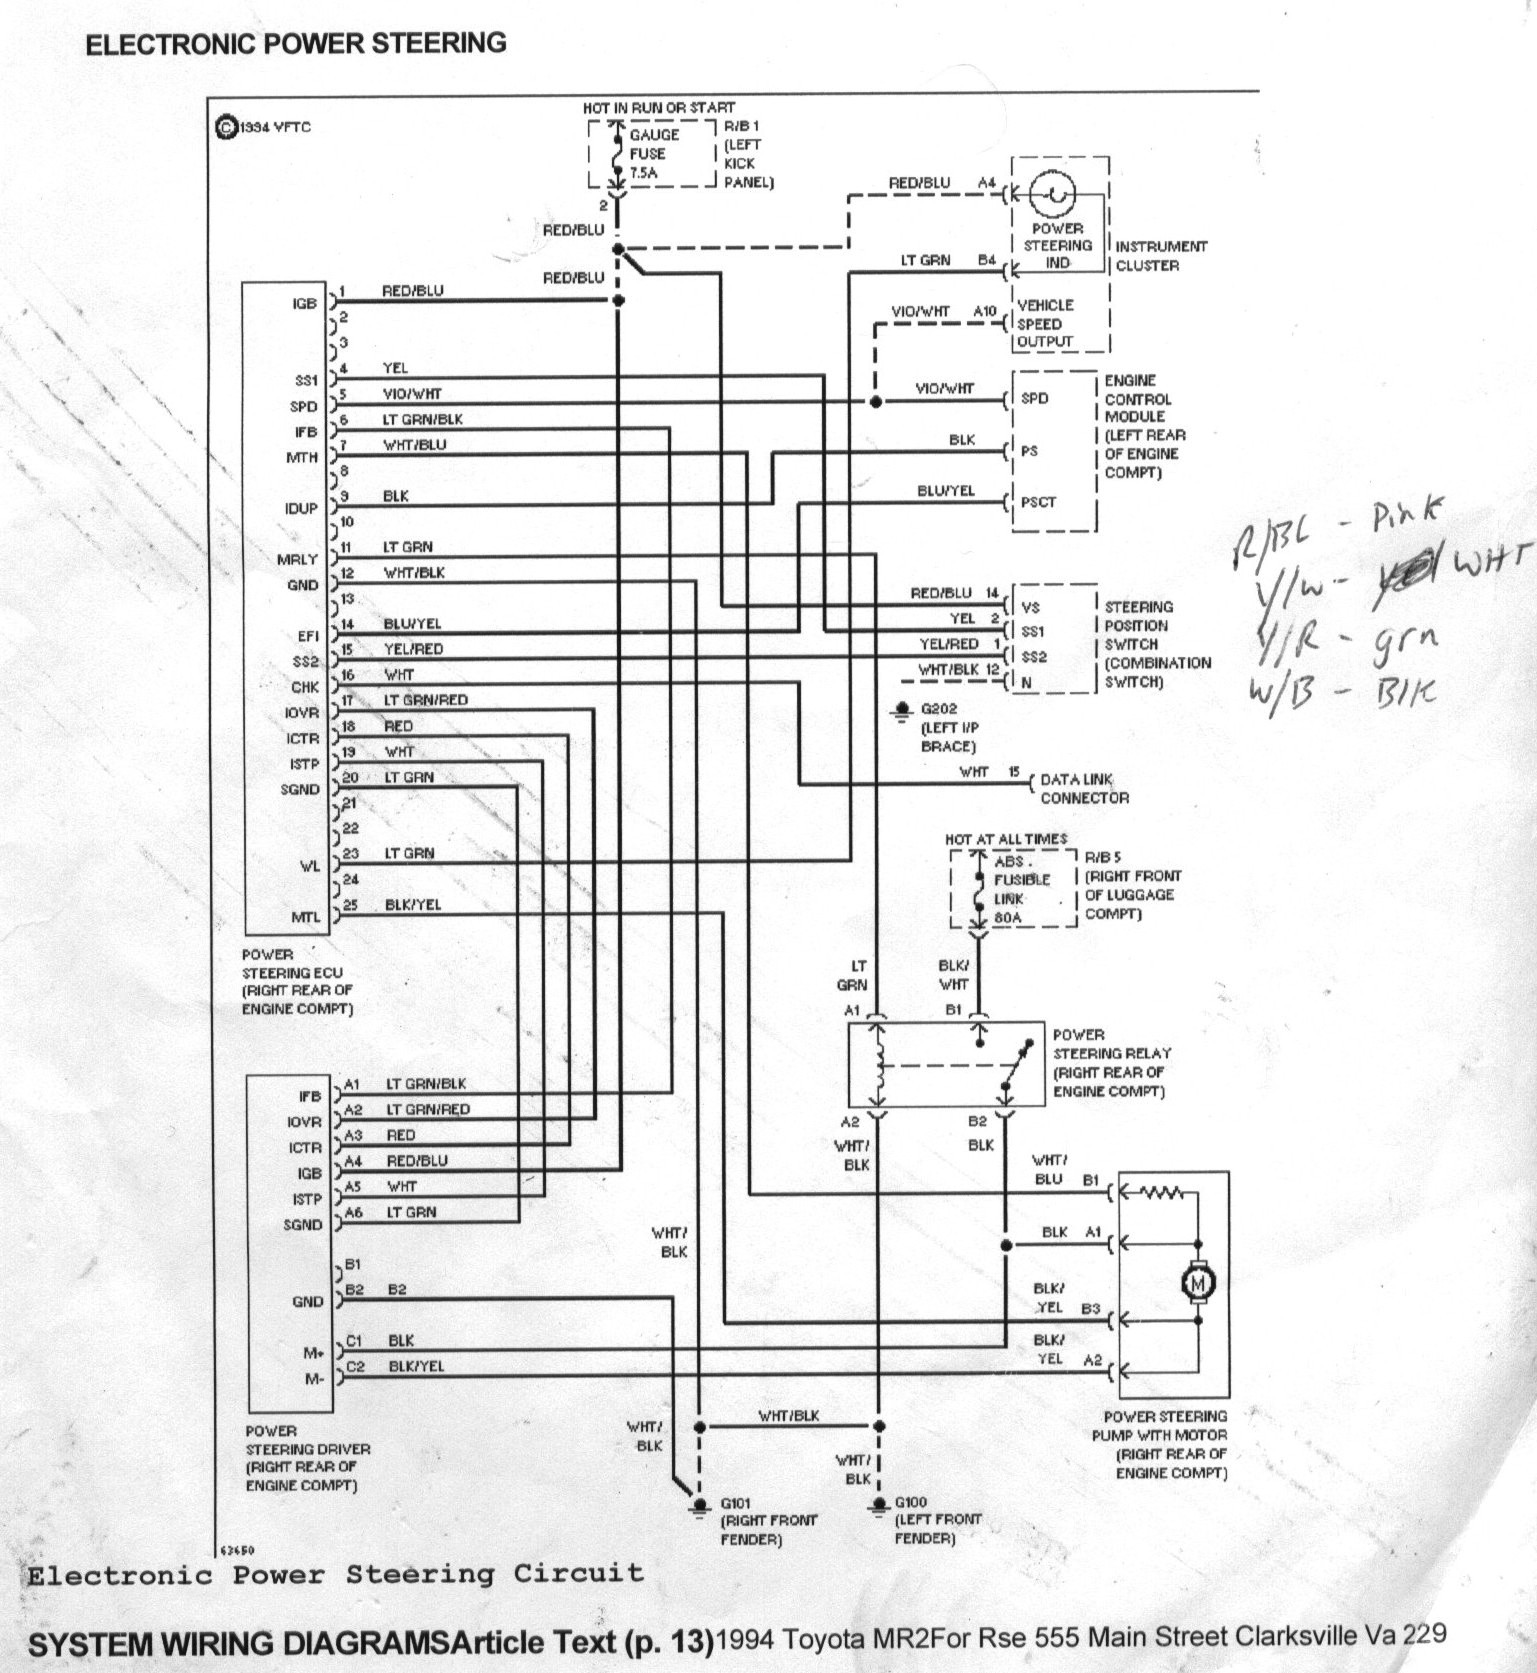 New Circuits Page 112 Fm Transmitter Modulation Using Vco Block Diagram Chipset 4046 Pll Toyota Mr2 Power Steering System